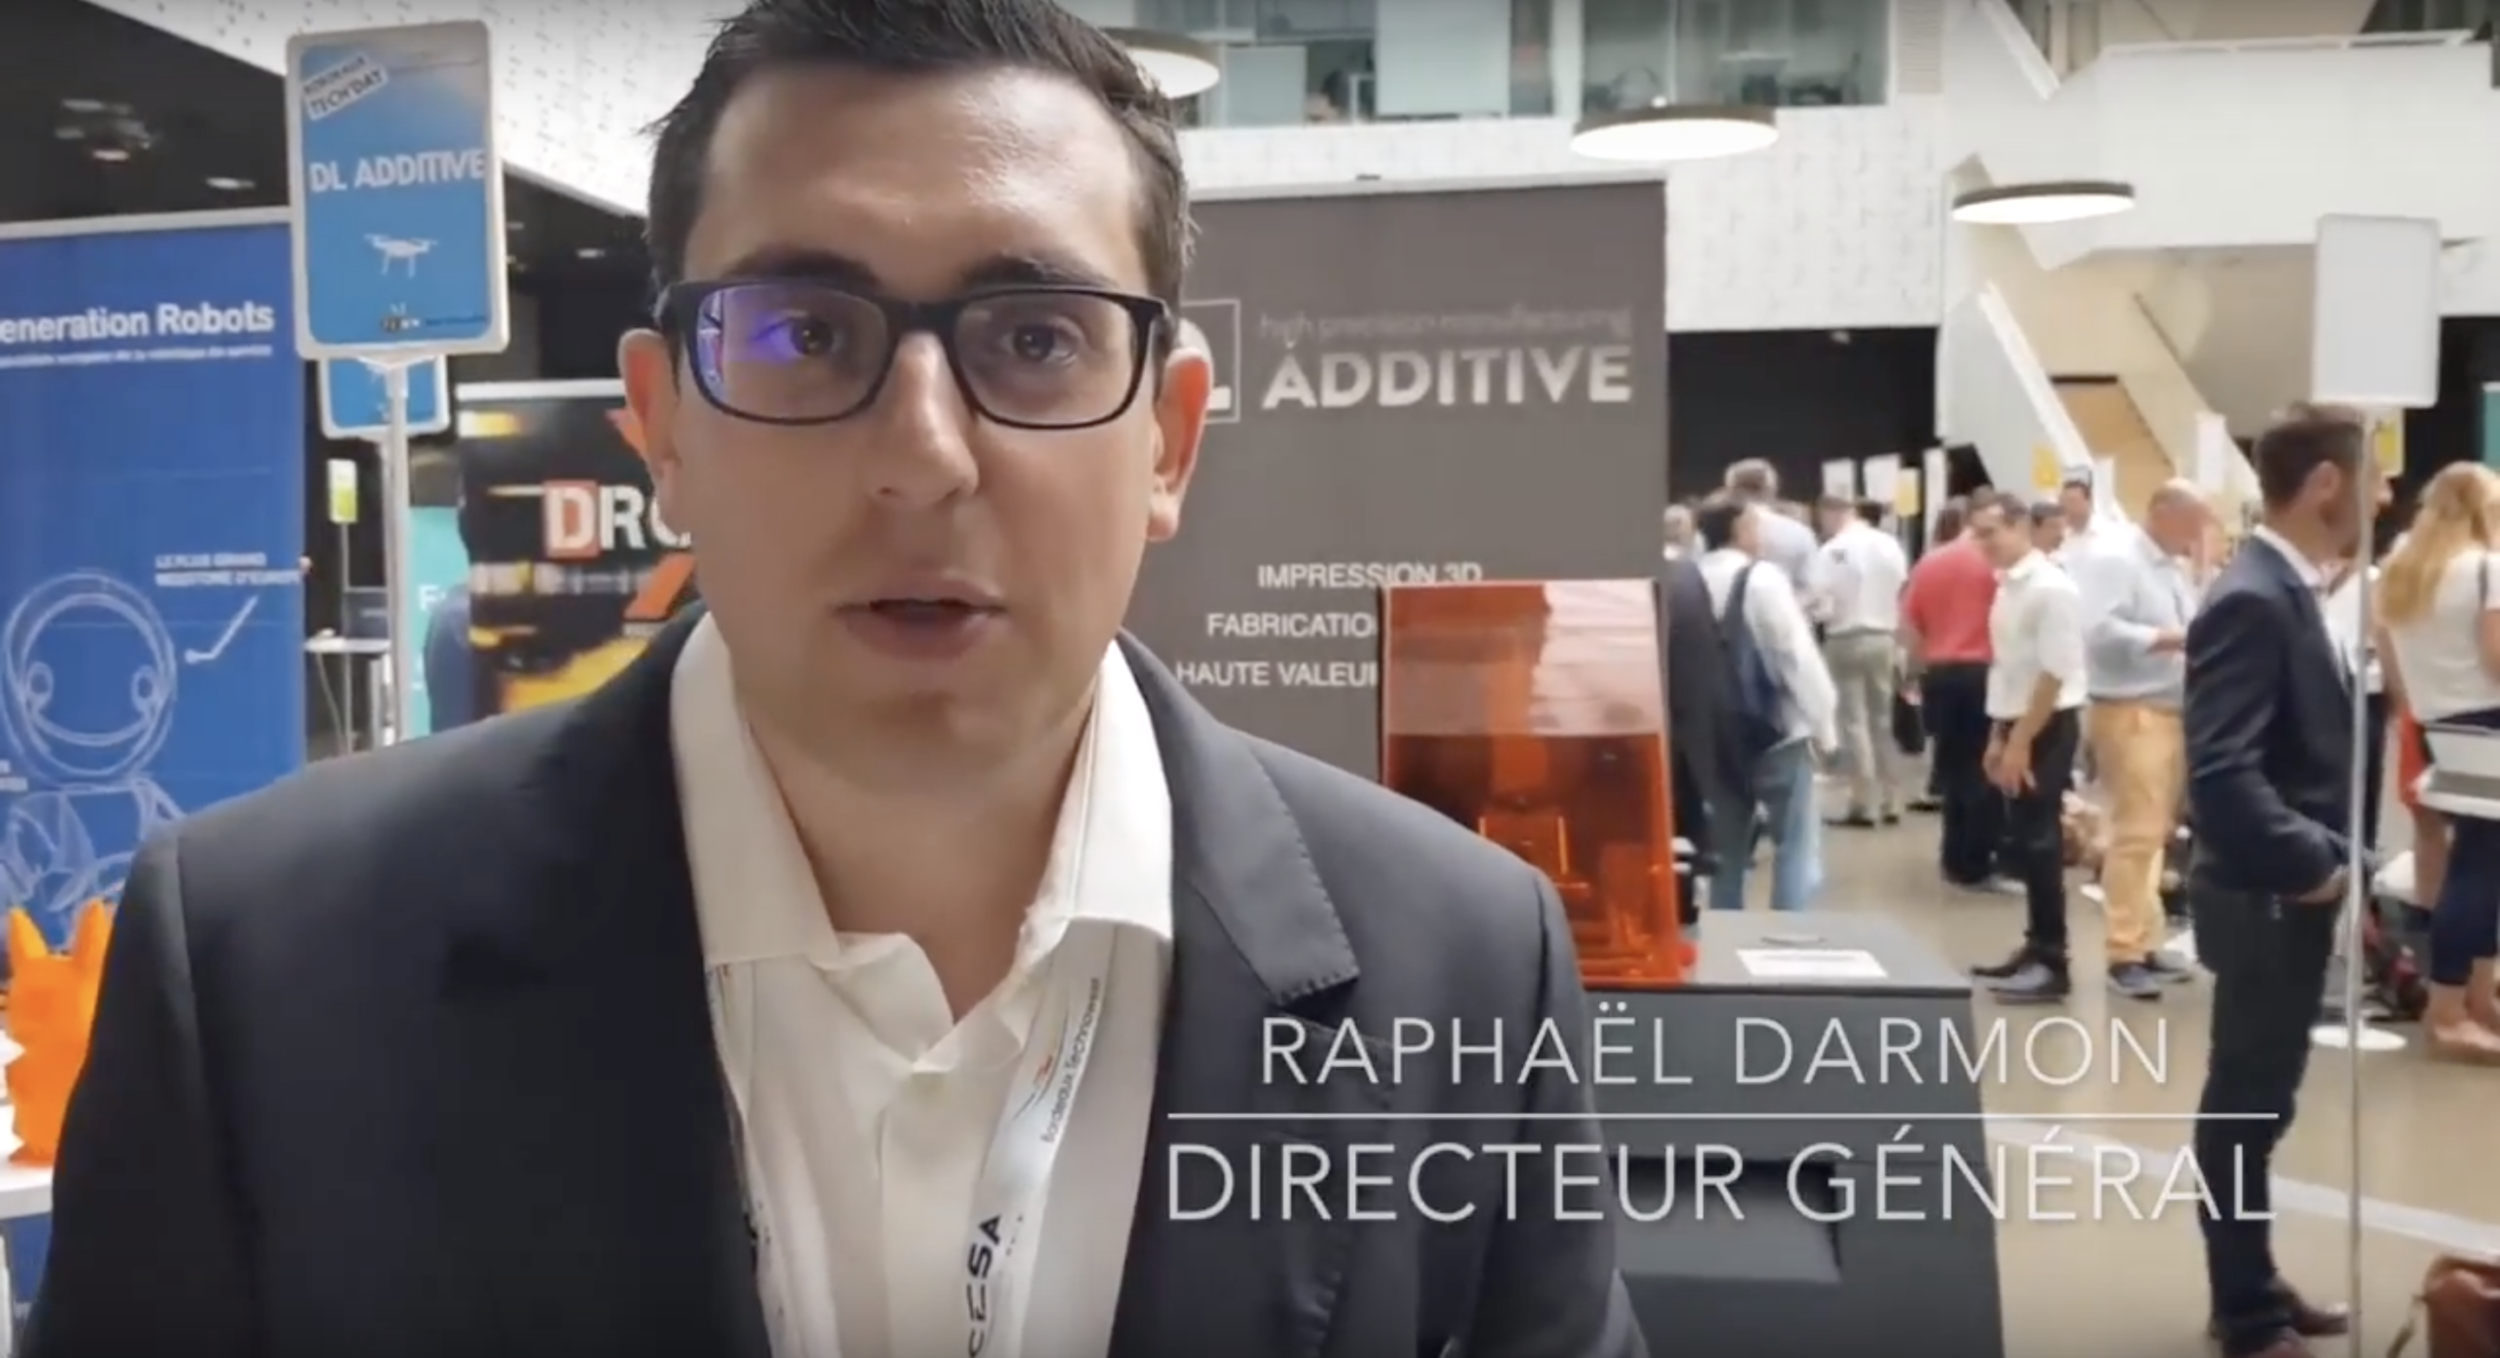 bordeaux-tech-day-2018 [Vidéo] : DL Additive sur le Bordeaux Tech'Day